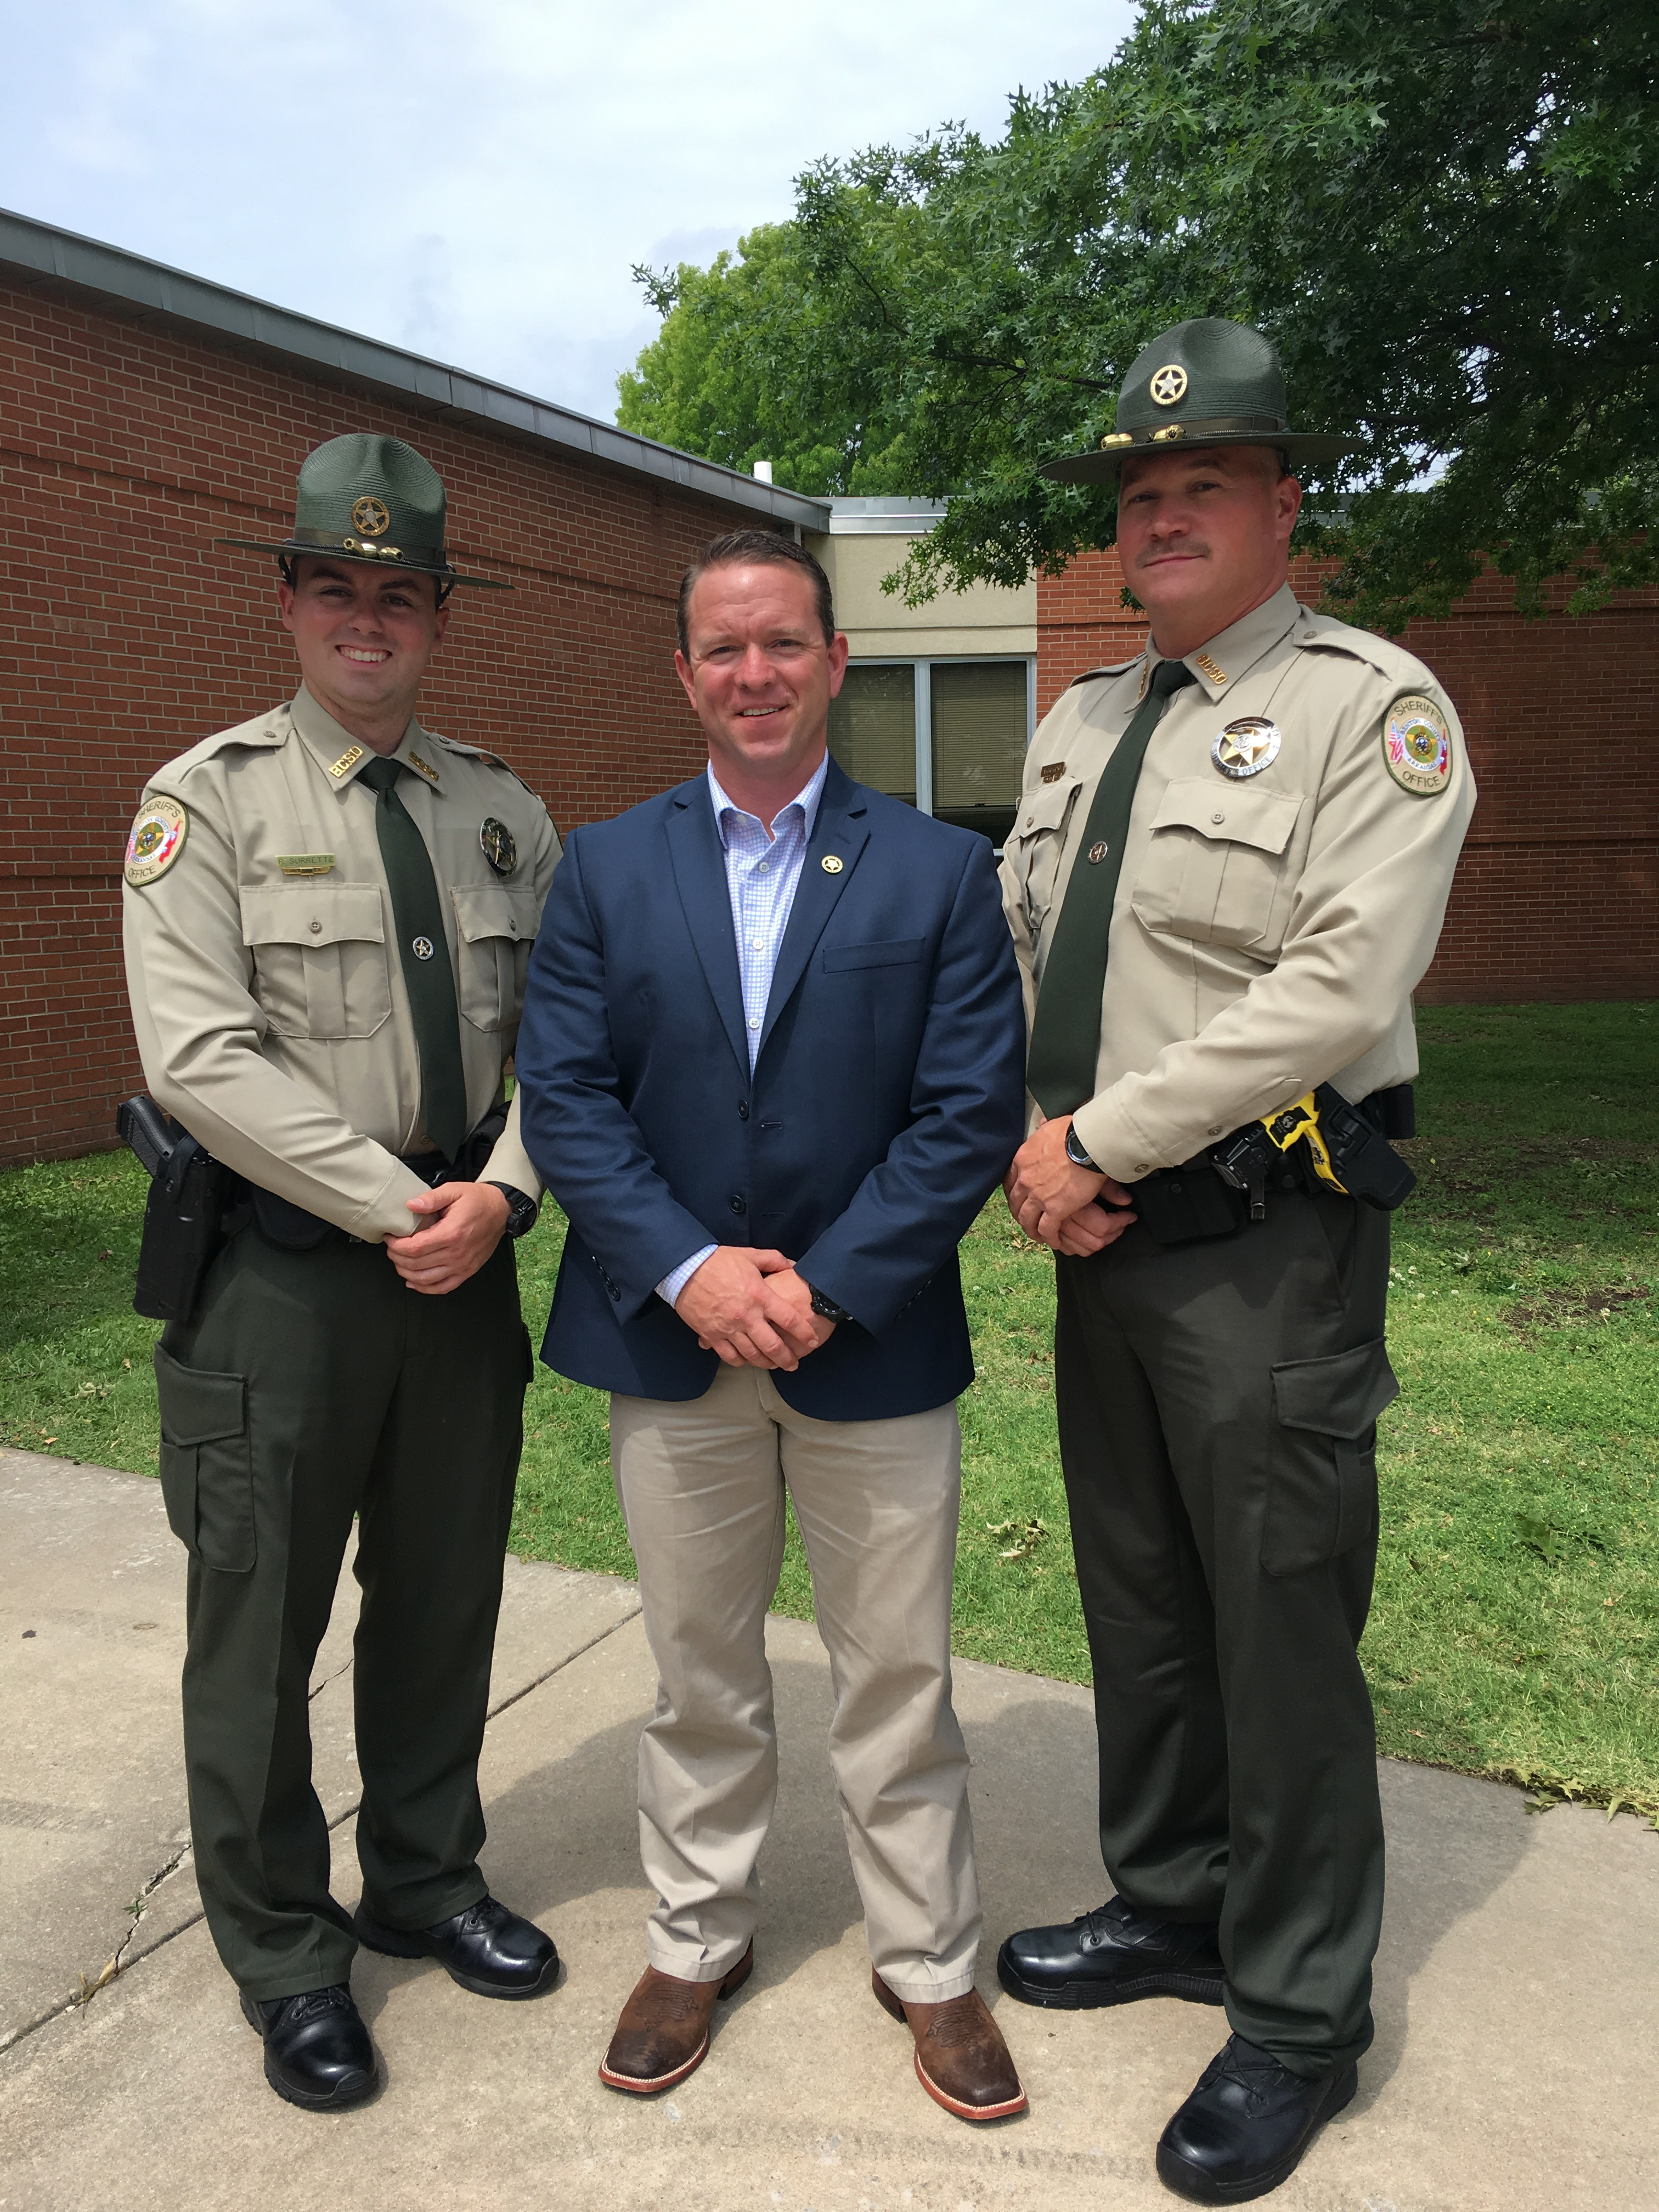 Richard Surrente, Sheriff Shawn Holloway and Andrew Gregory